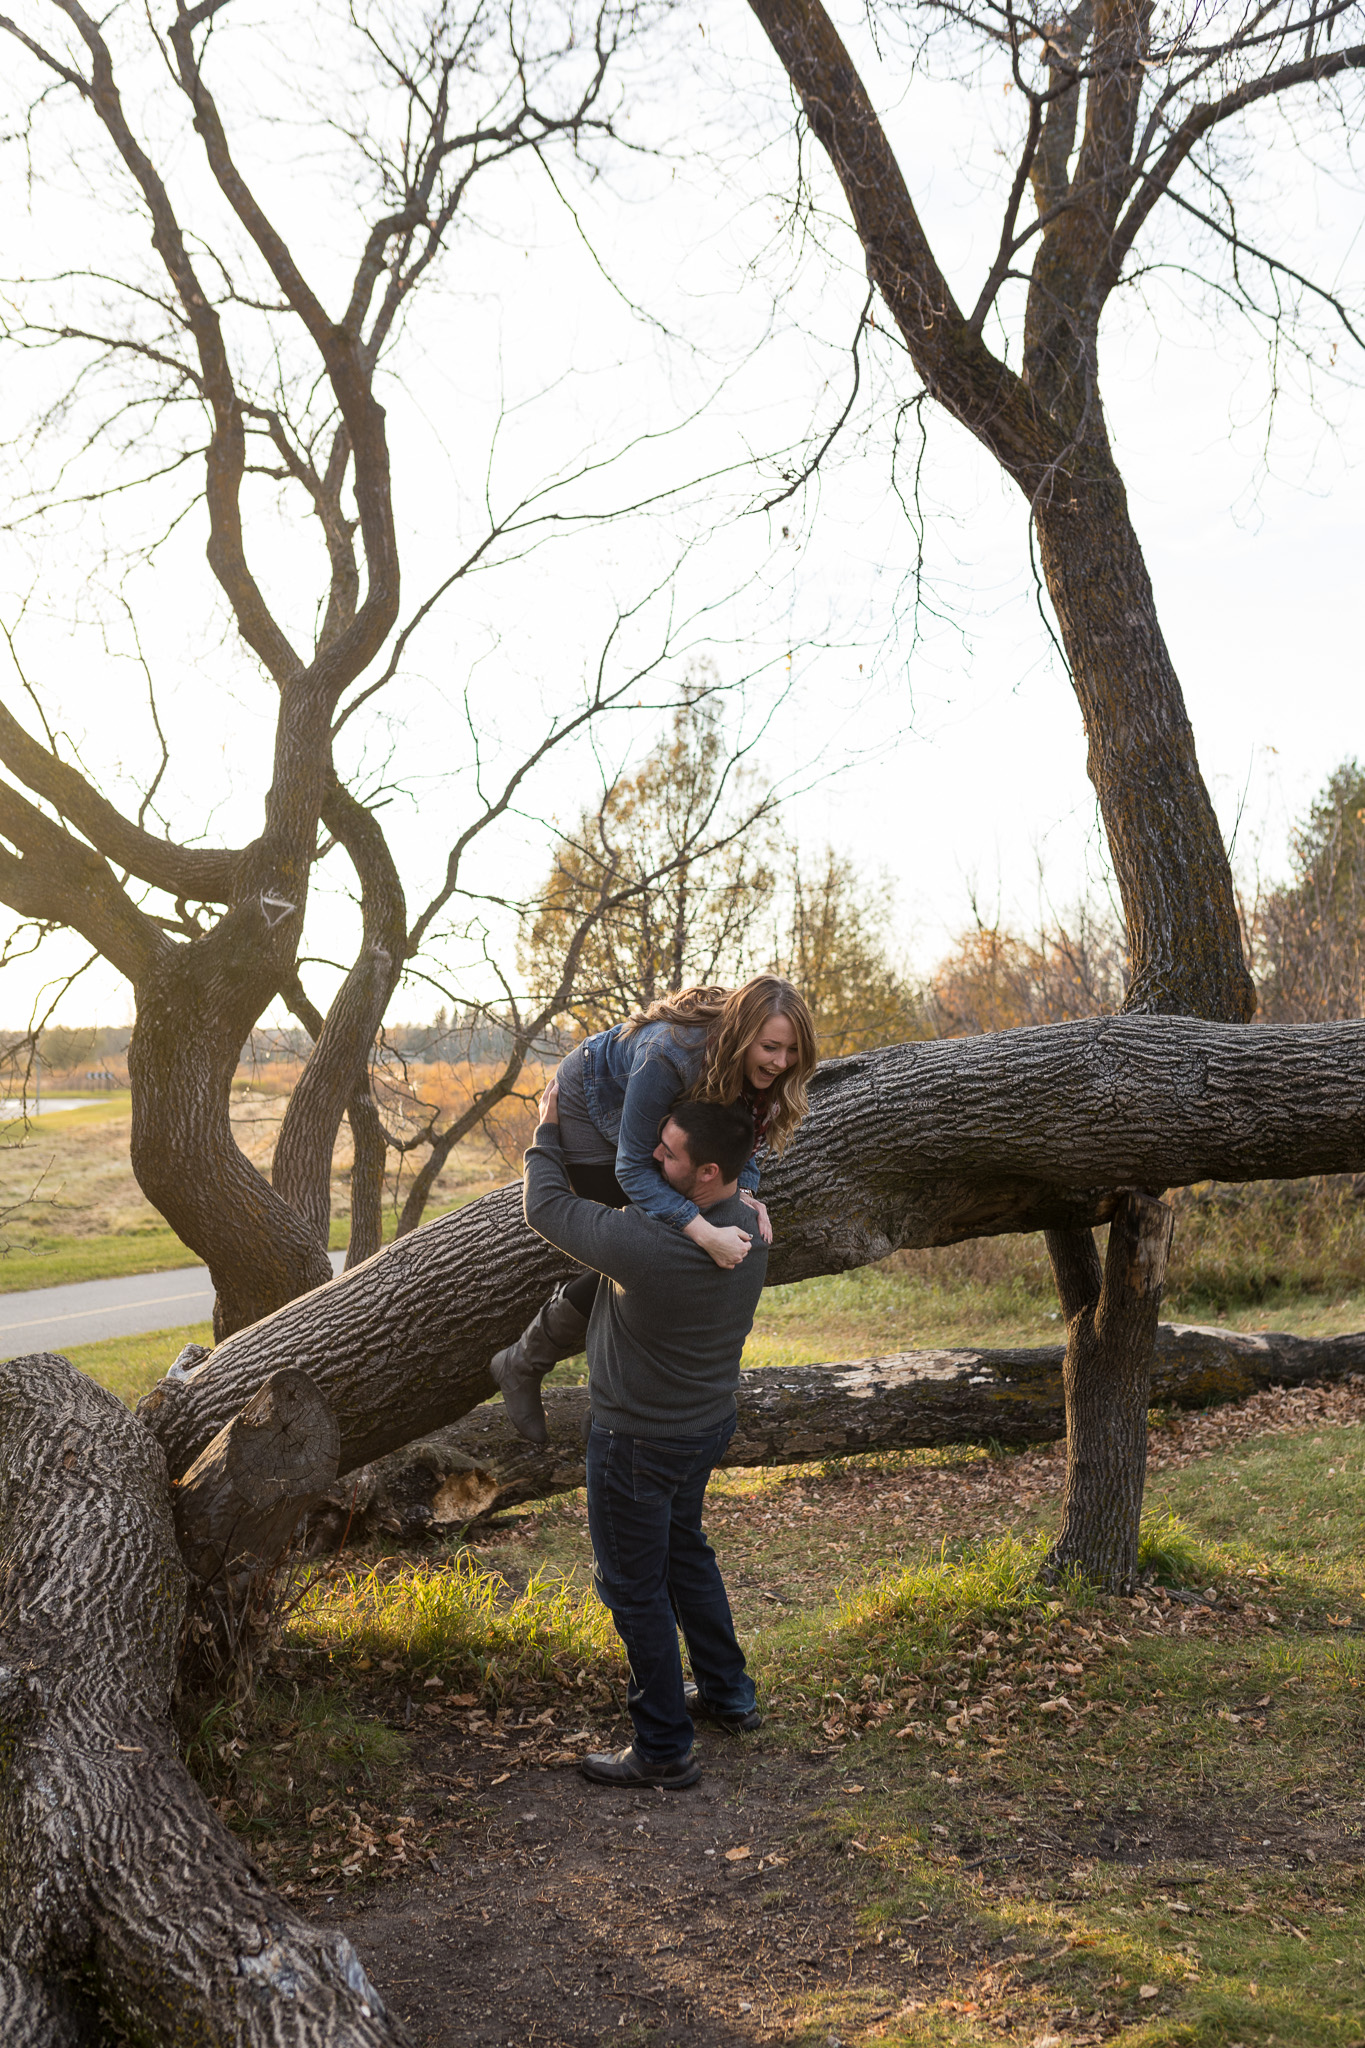 winnipeg-engagement-birdshill-park-24.jpg